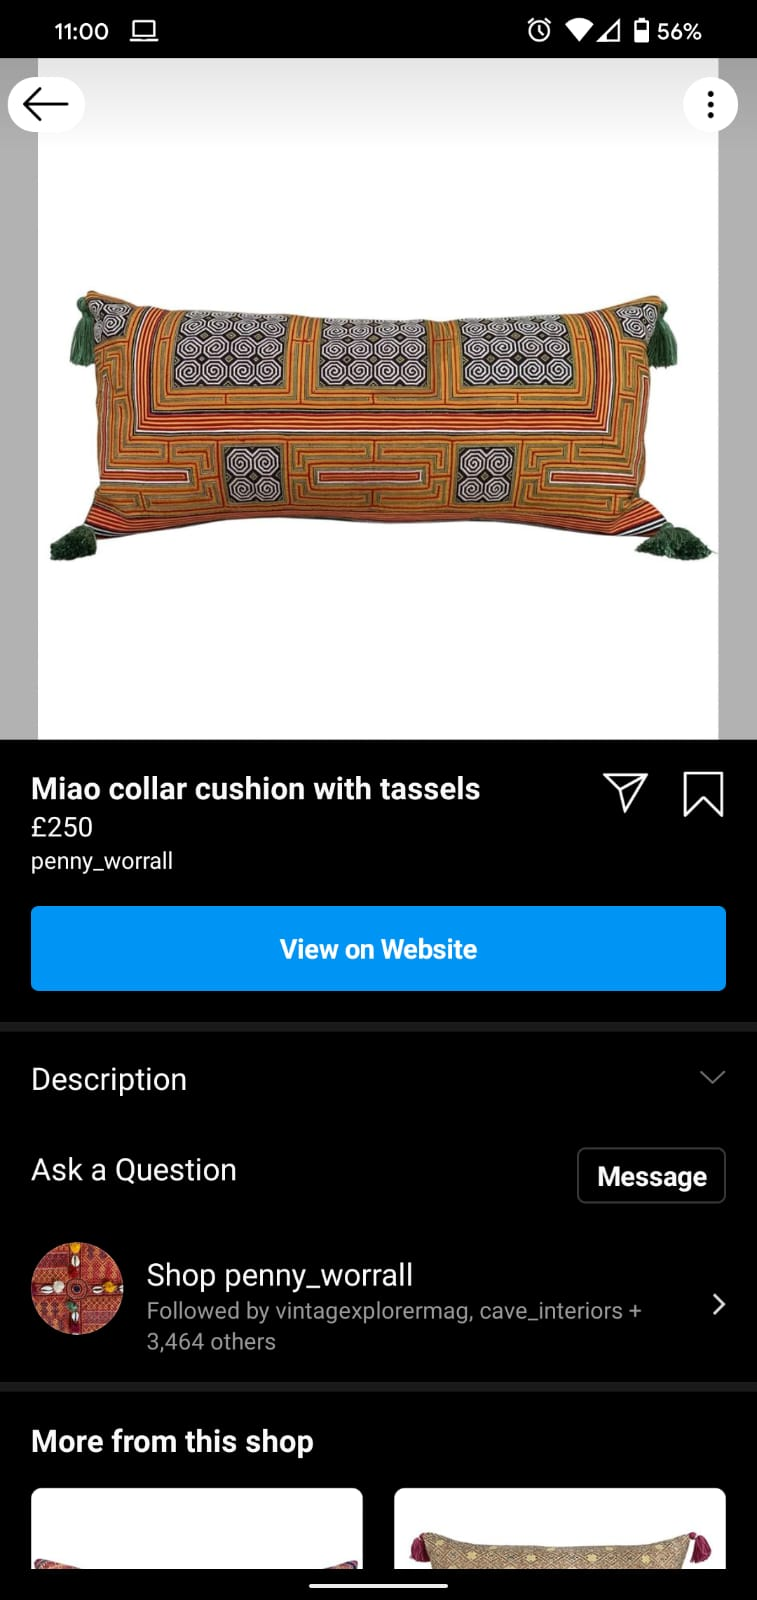 instagram shopping penny worral antiques web design